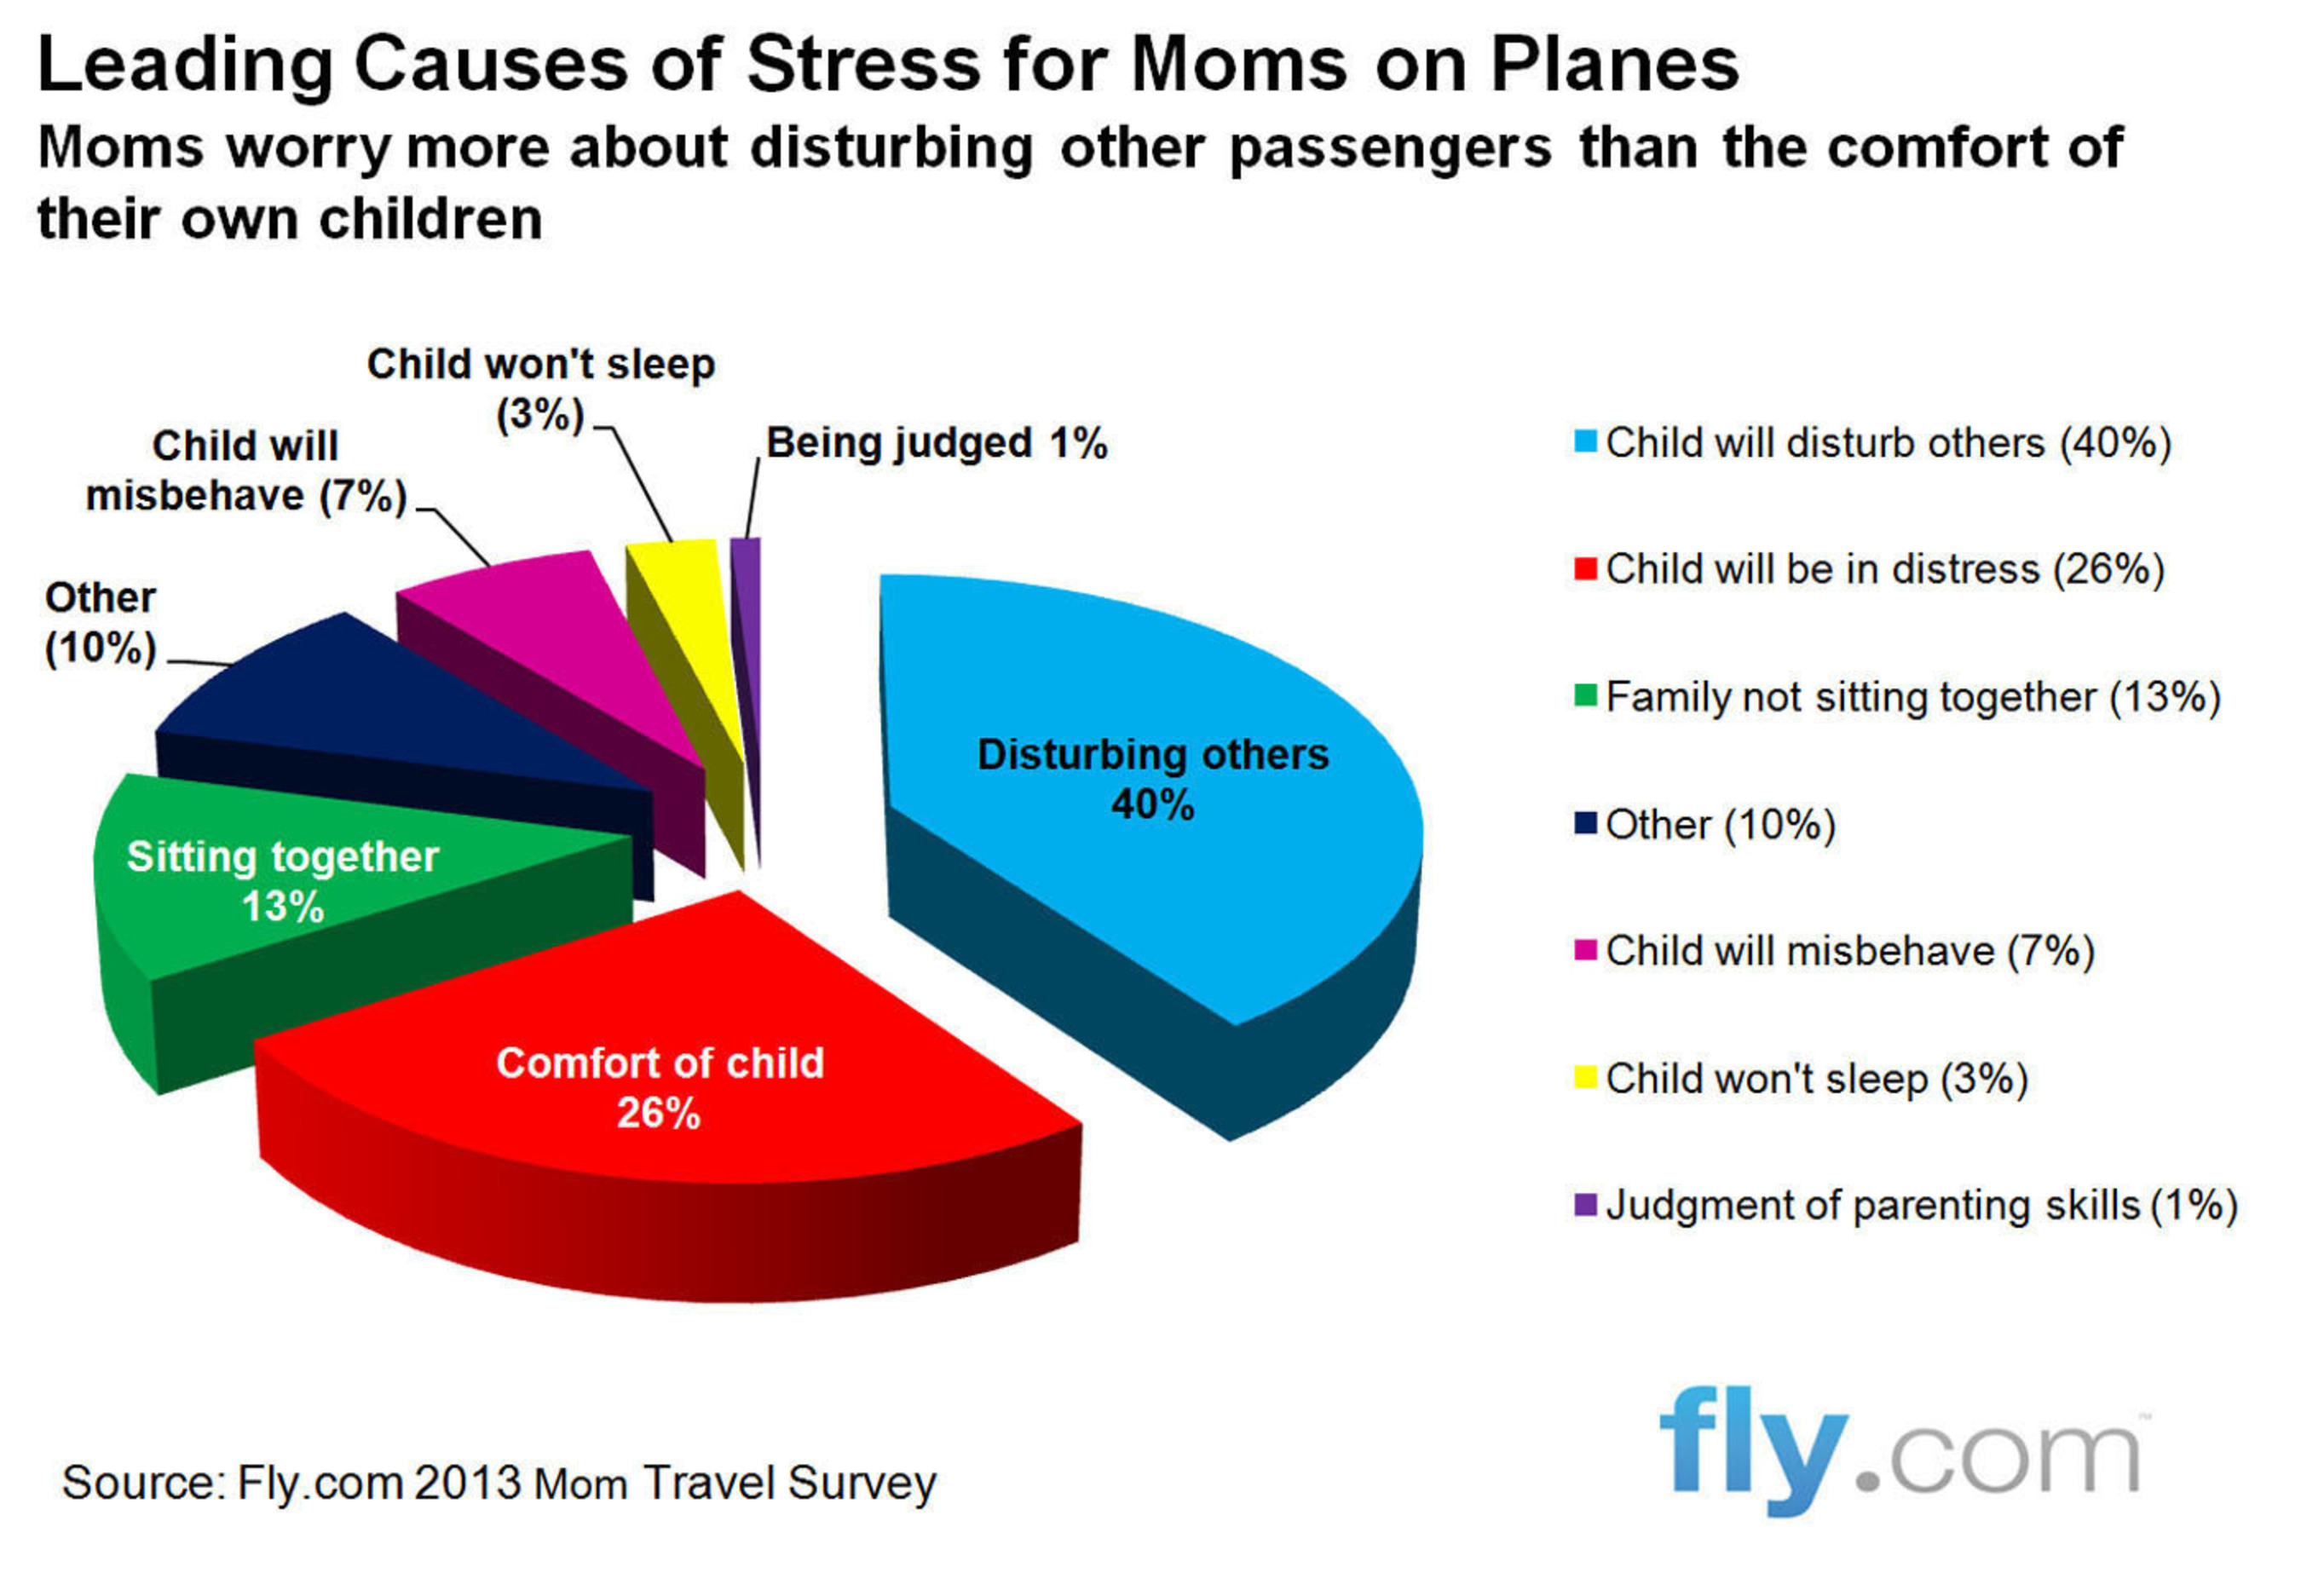 Moms worry more about disturbing other passengers on planes than the comfort of their own children.  ...